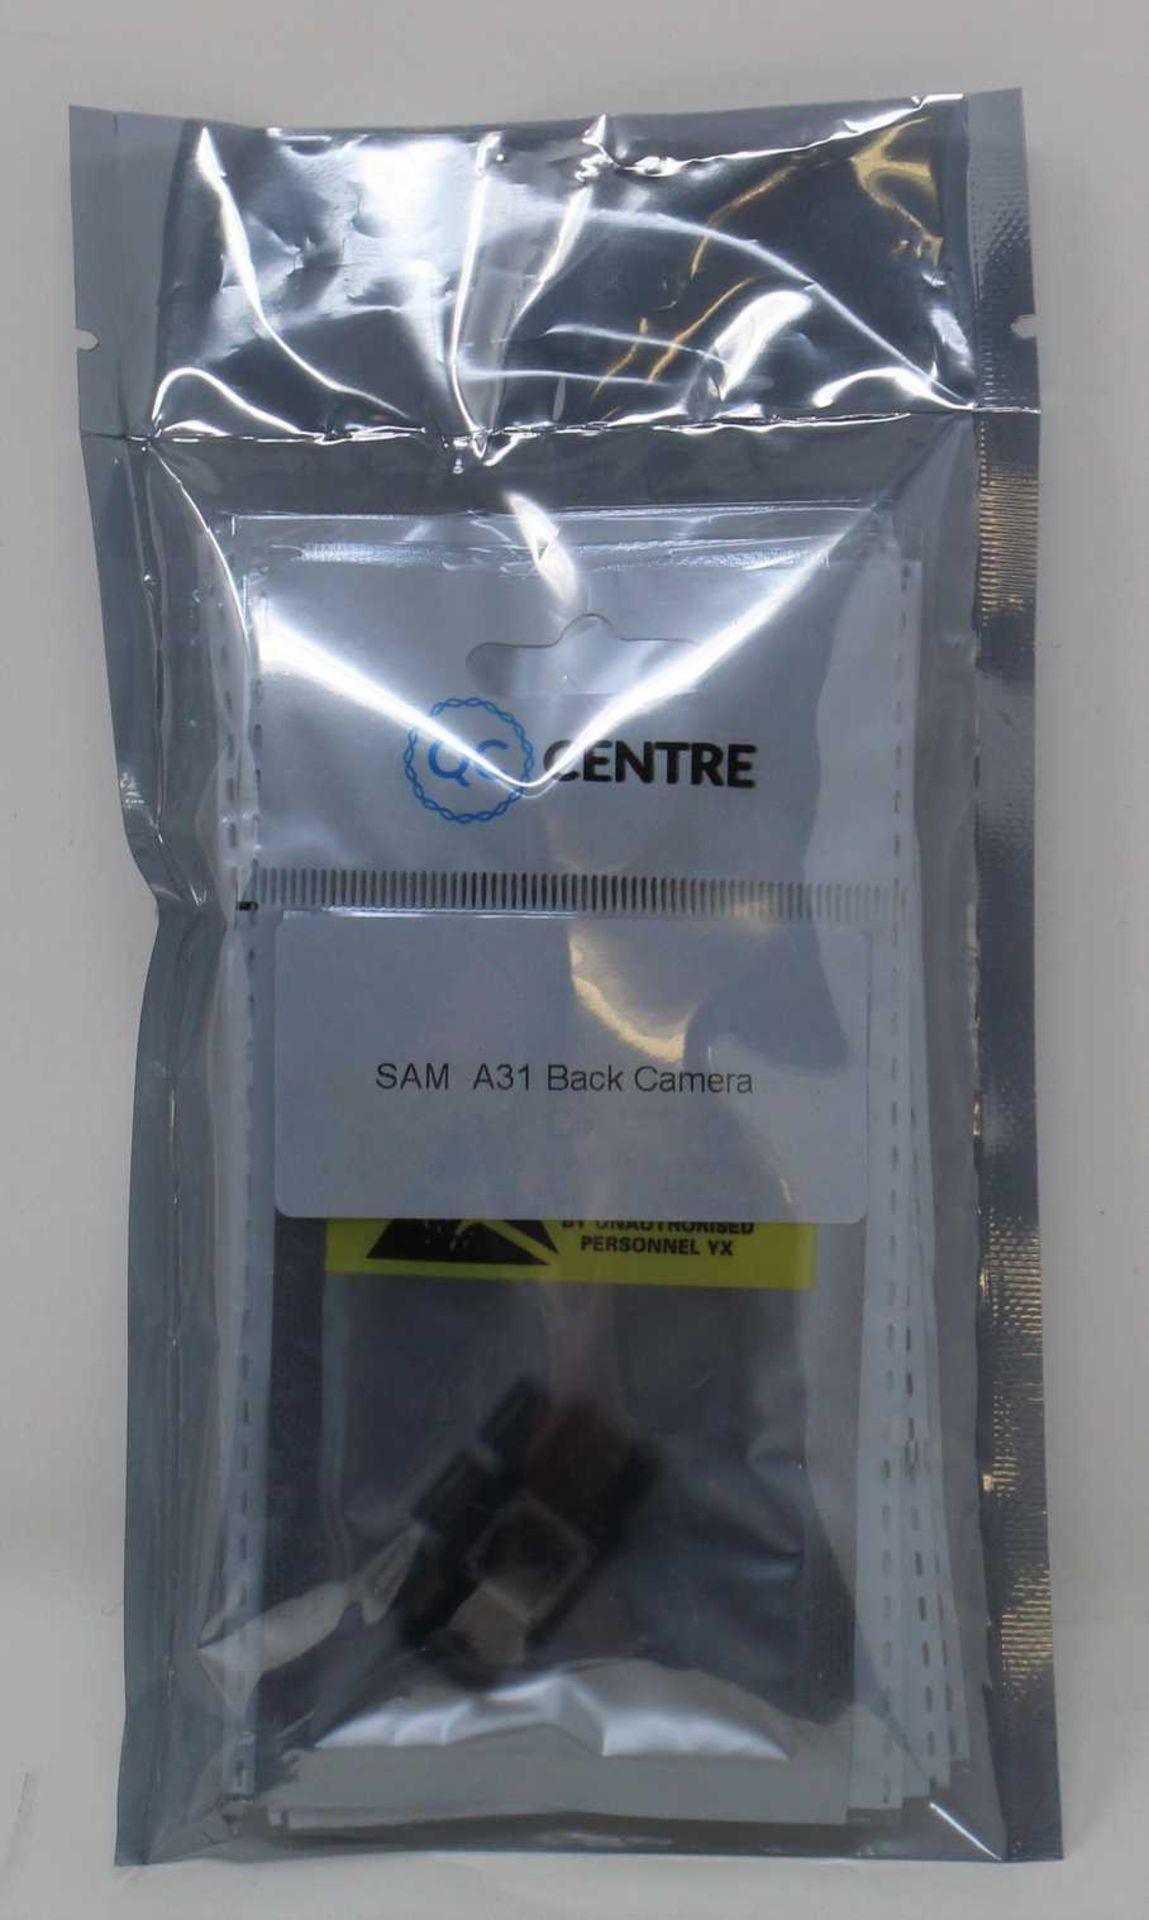 Ten as new QC Centre replacement front cameras for Samsung A31 and two packs of five QC Centre